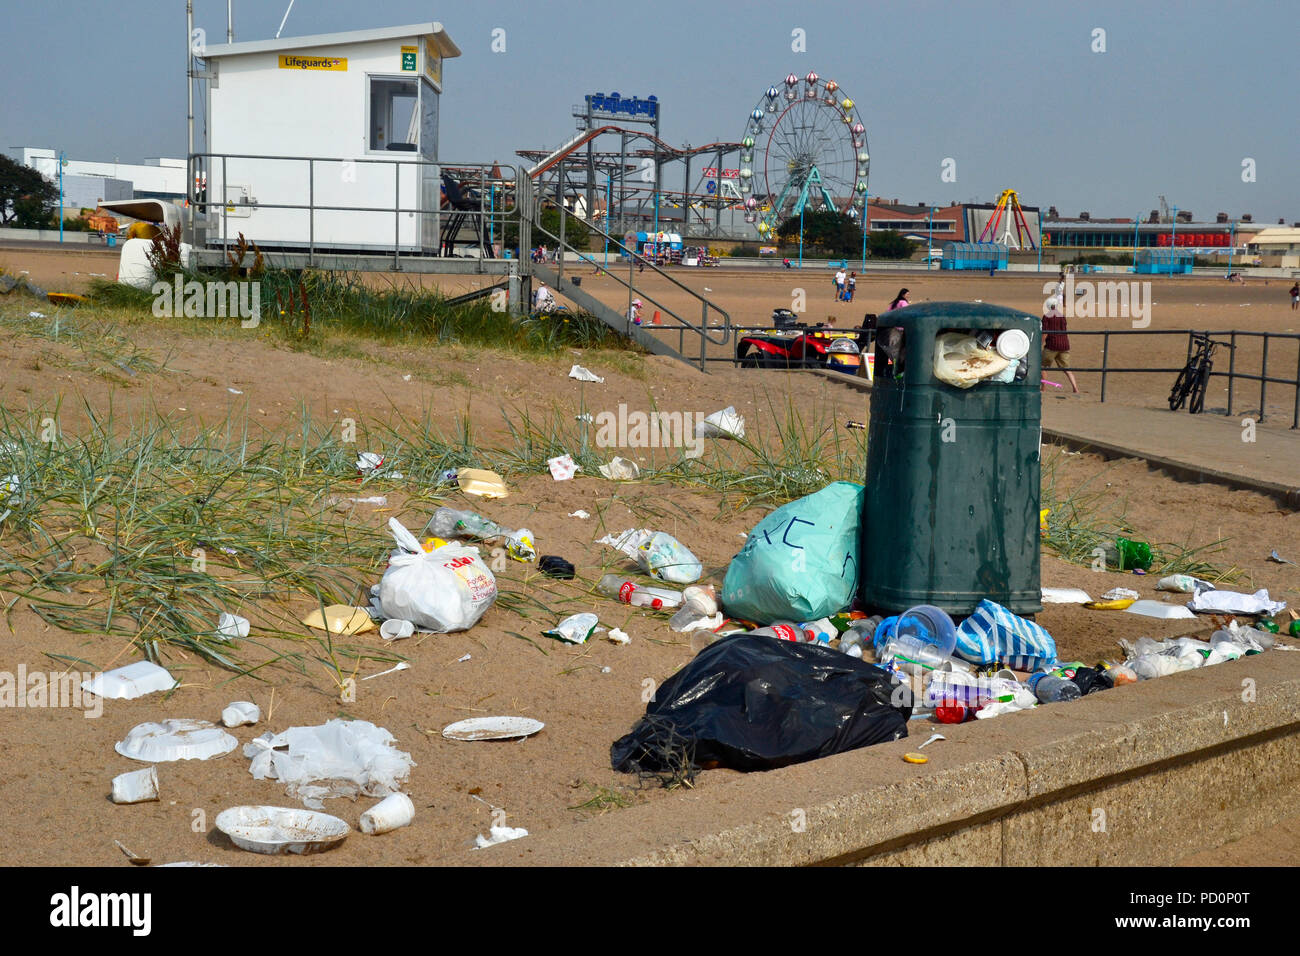 Overflowing rubbish bins and litter on Skegness Beach in Summer 2018. Ocean plastic. England, UK. - Stock Image